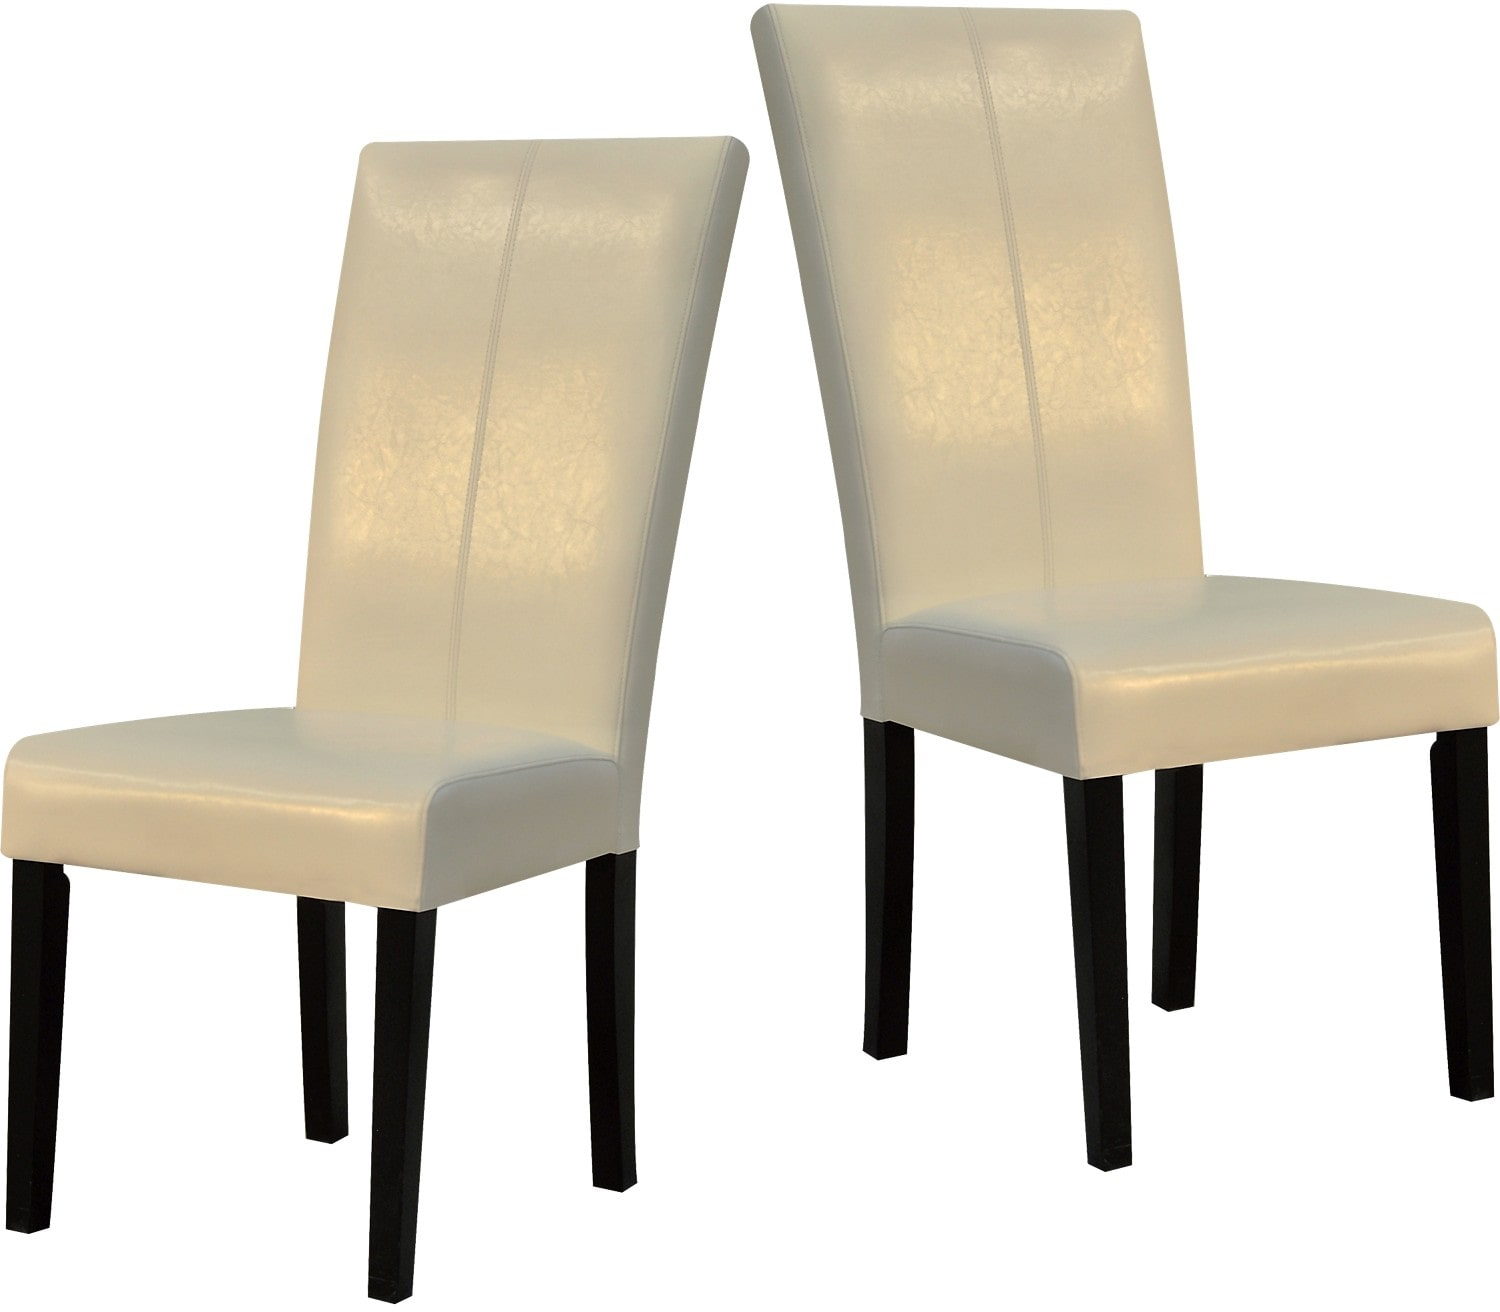 White Dining Chair Package